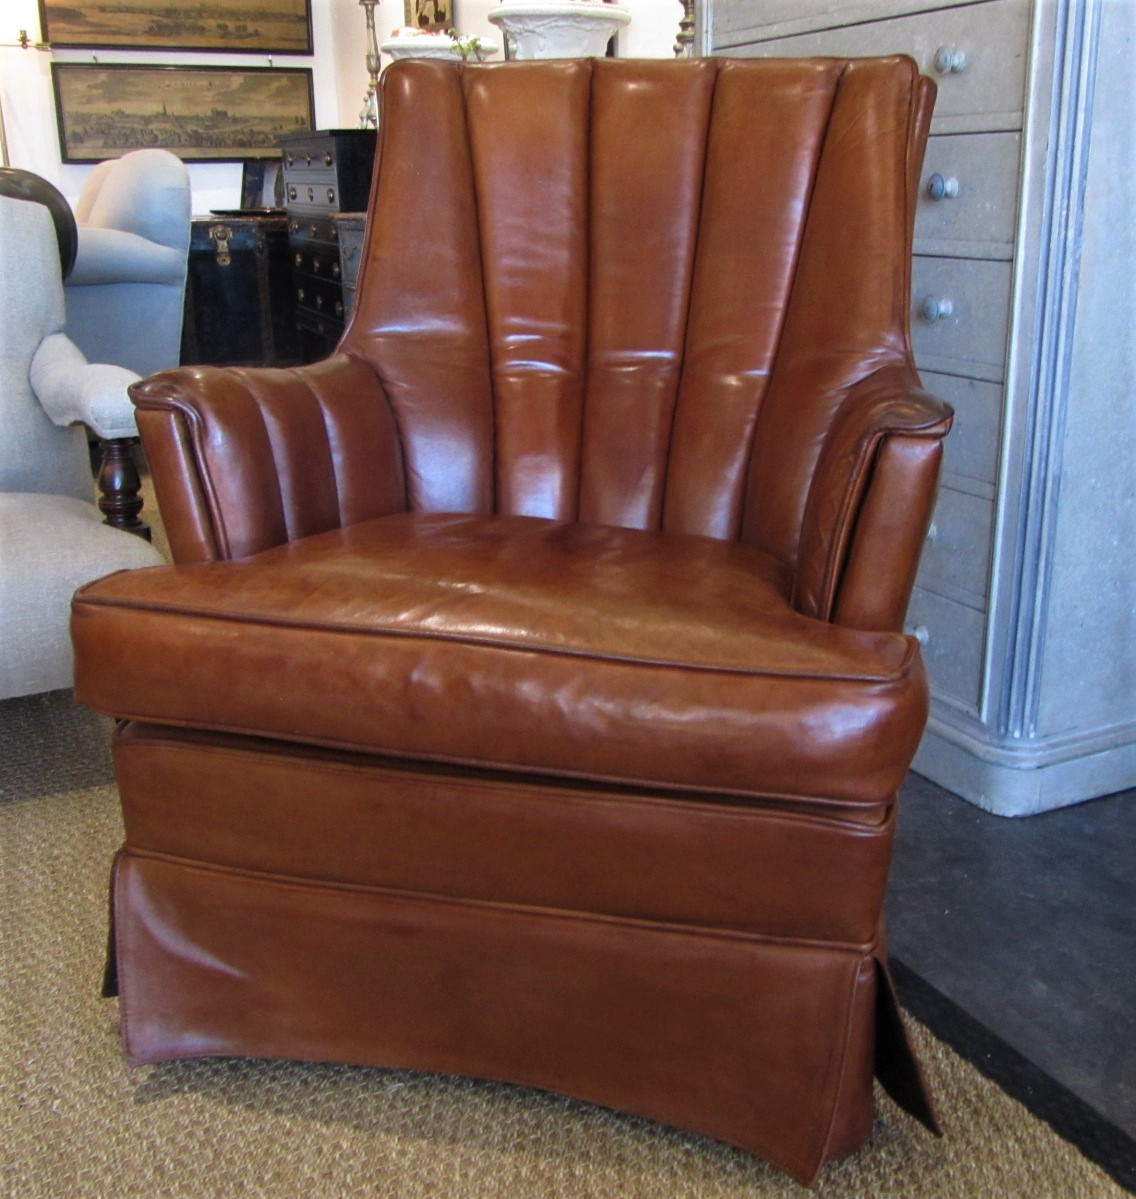 Pleasing A French 50S Club Leather Reading Chair Caraccident5 Cool Chair Designs And Ideas Caraccident5Info